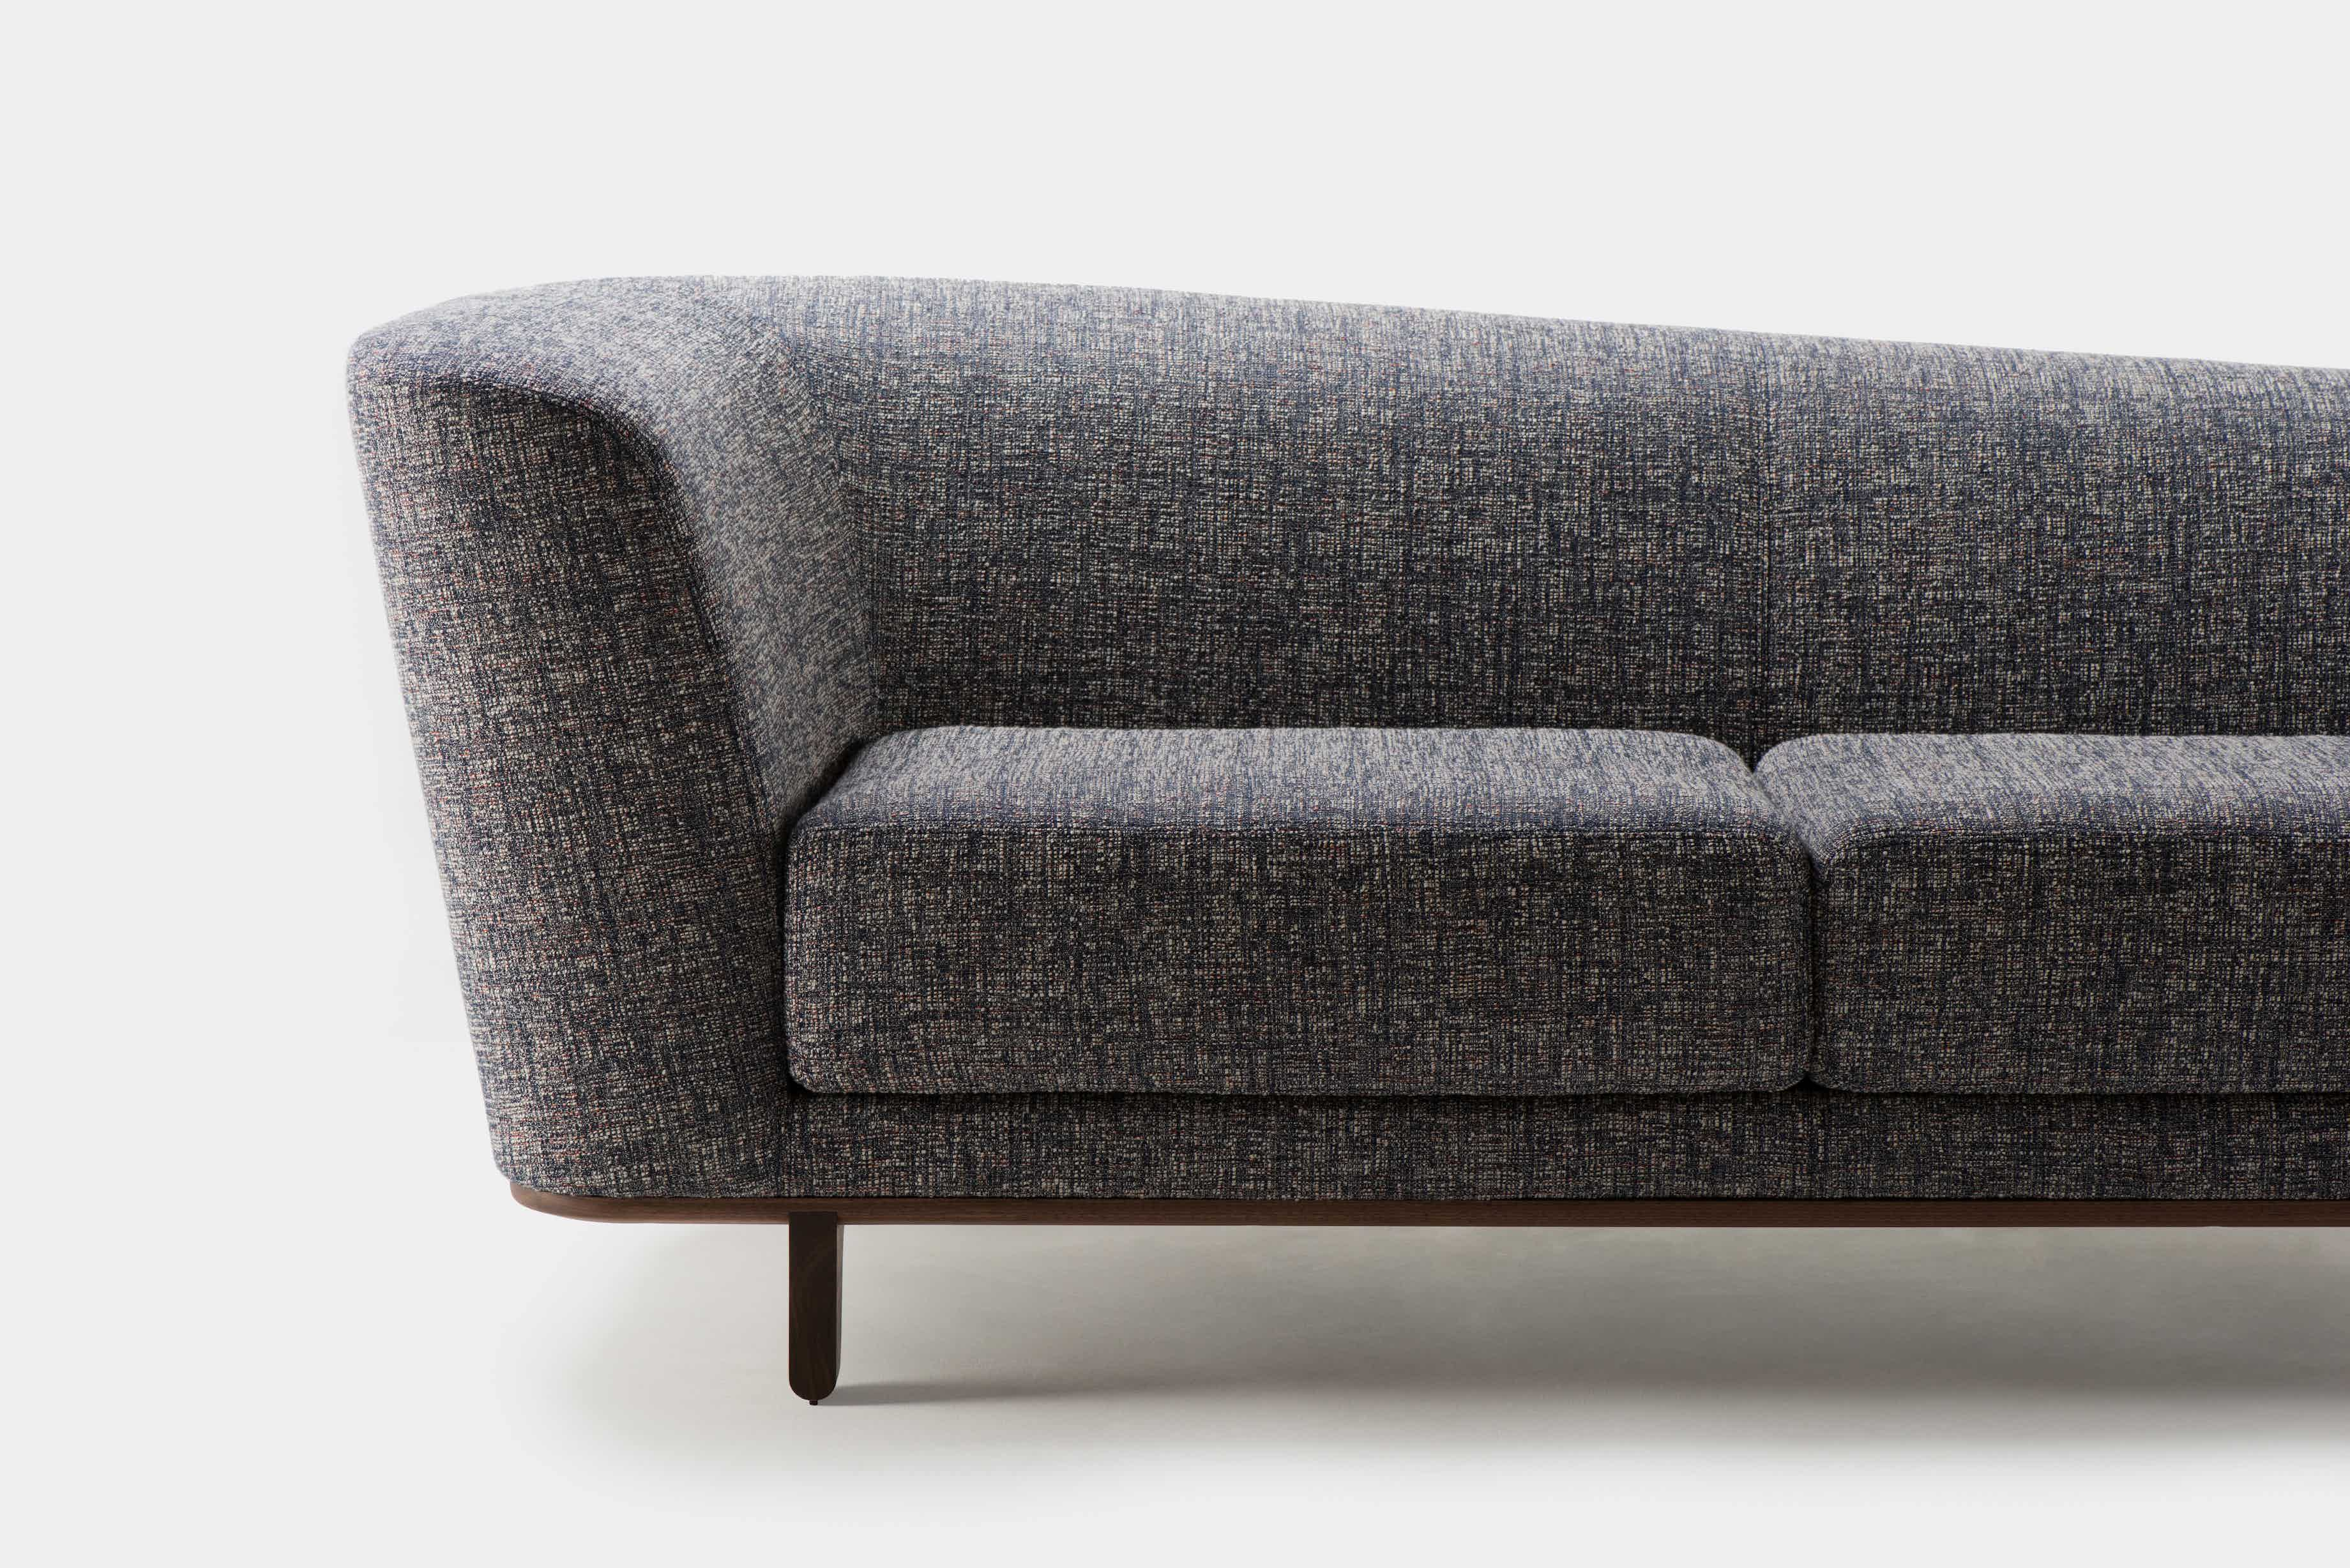 De La Espada Matthew Hilton Otley Corner Unit Sofa Detail Haute Living